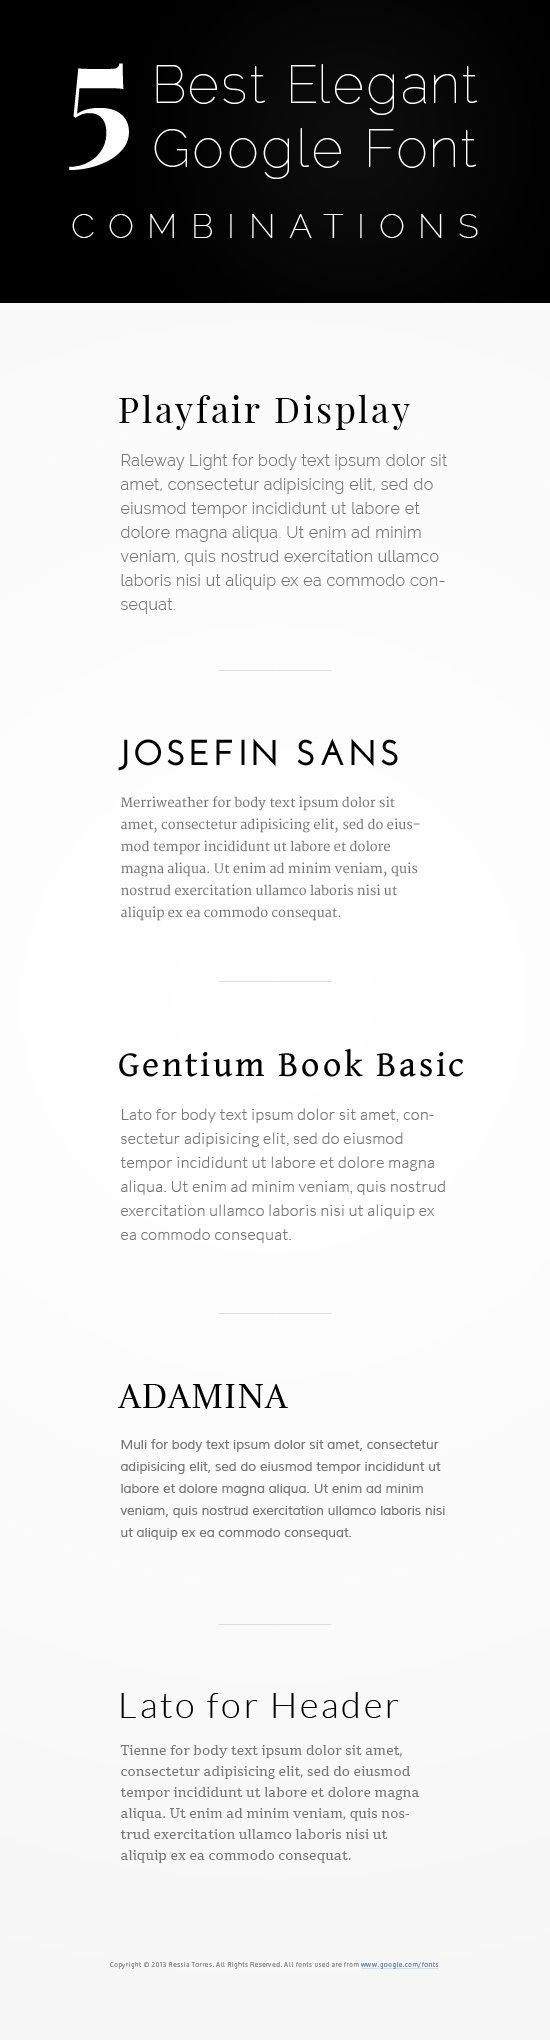 5 Best Elegant Google Font Combinations-  Fonts likt these are closest to what I want in the site.